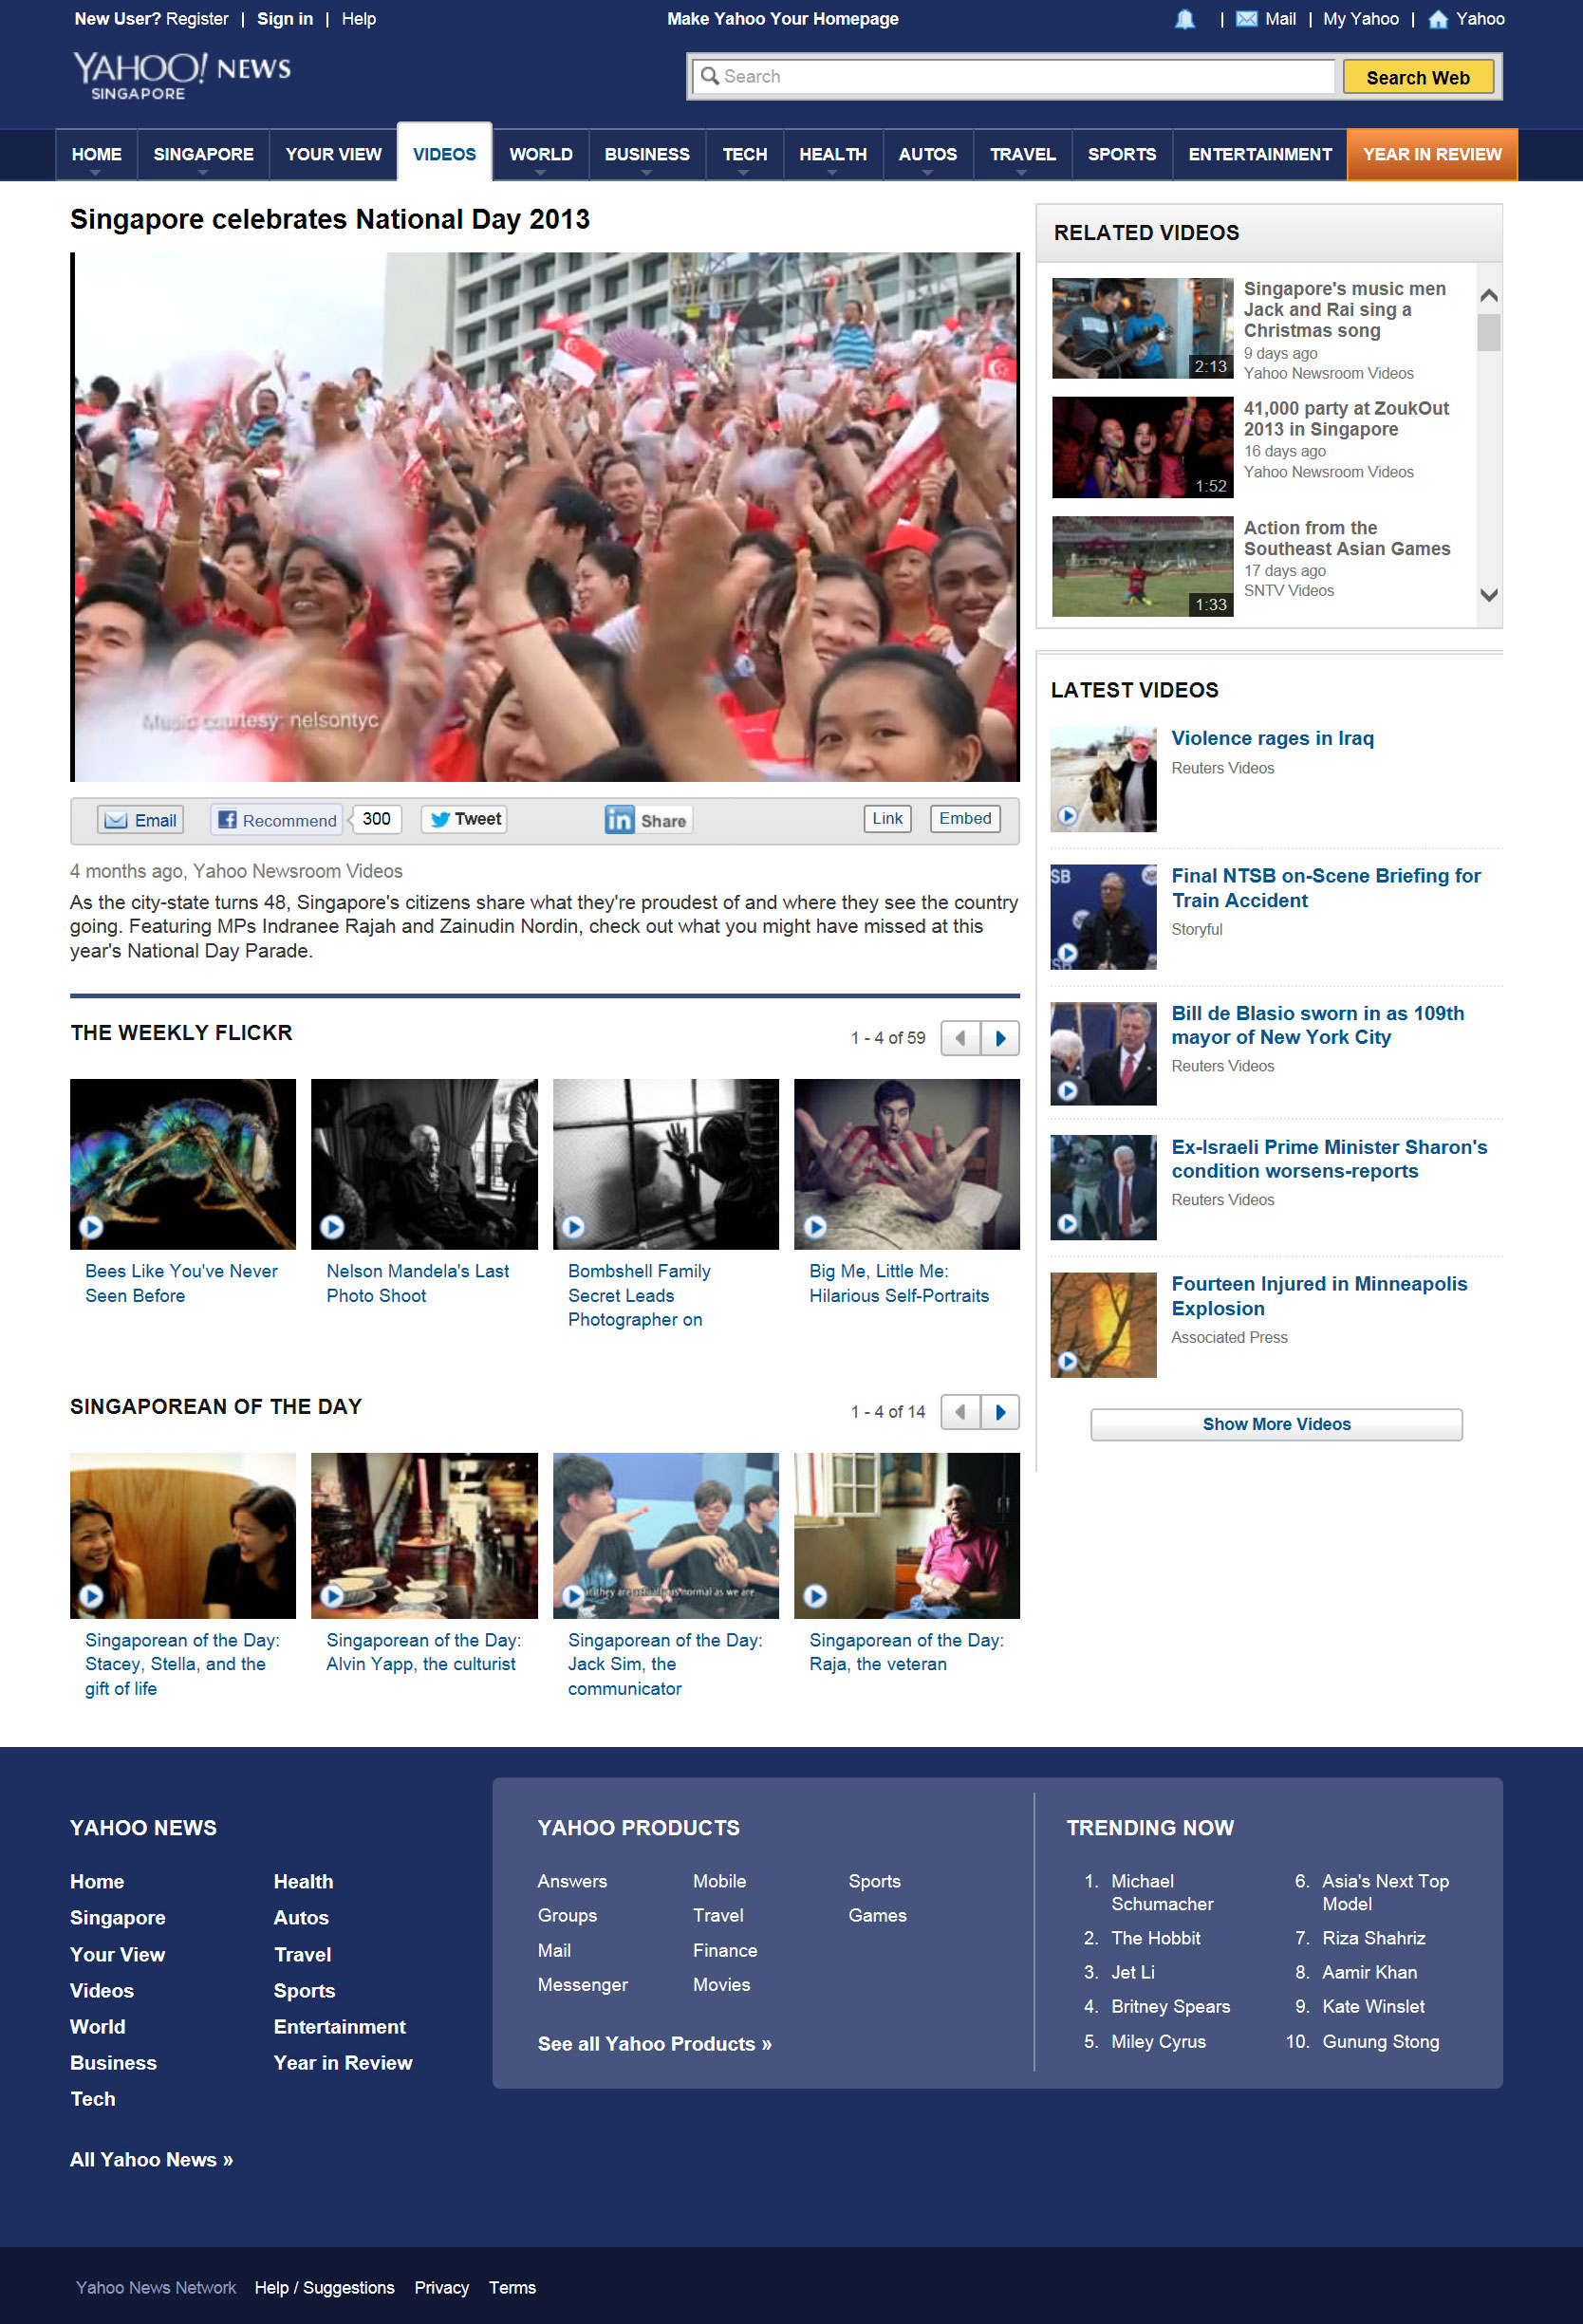 yahoo-news-singapore-national-day-feature-nelsontyc-song